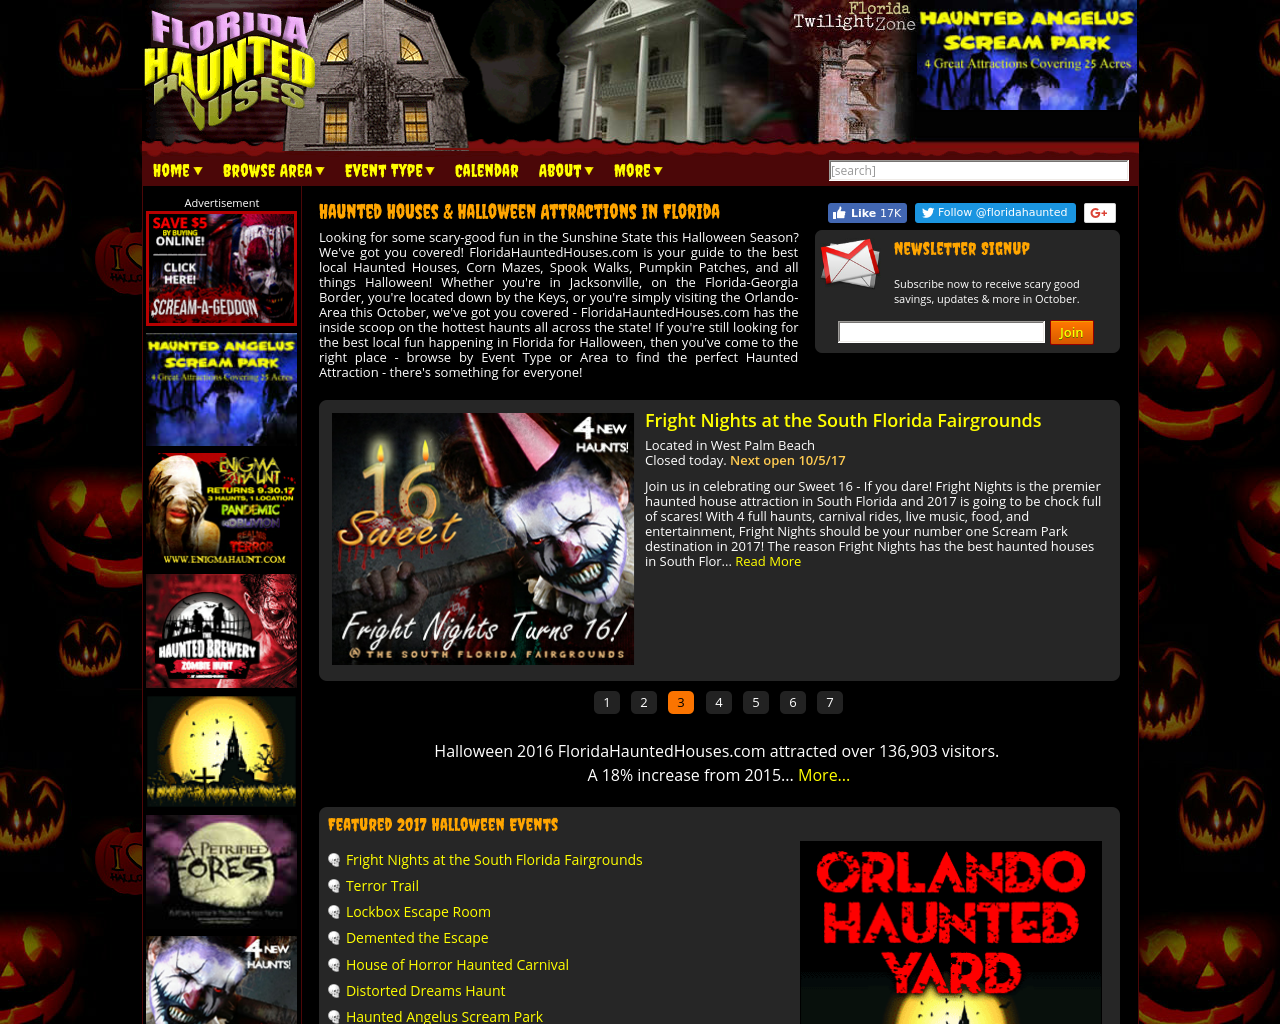 Florida-Haunted-Houses-Advertising-Reviews-Pricing